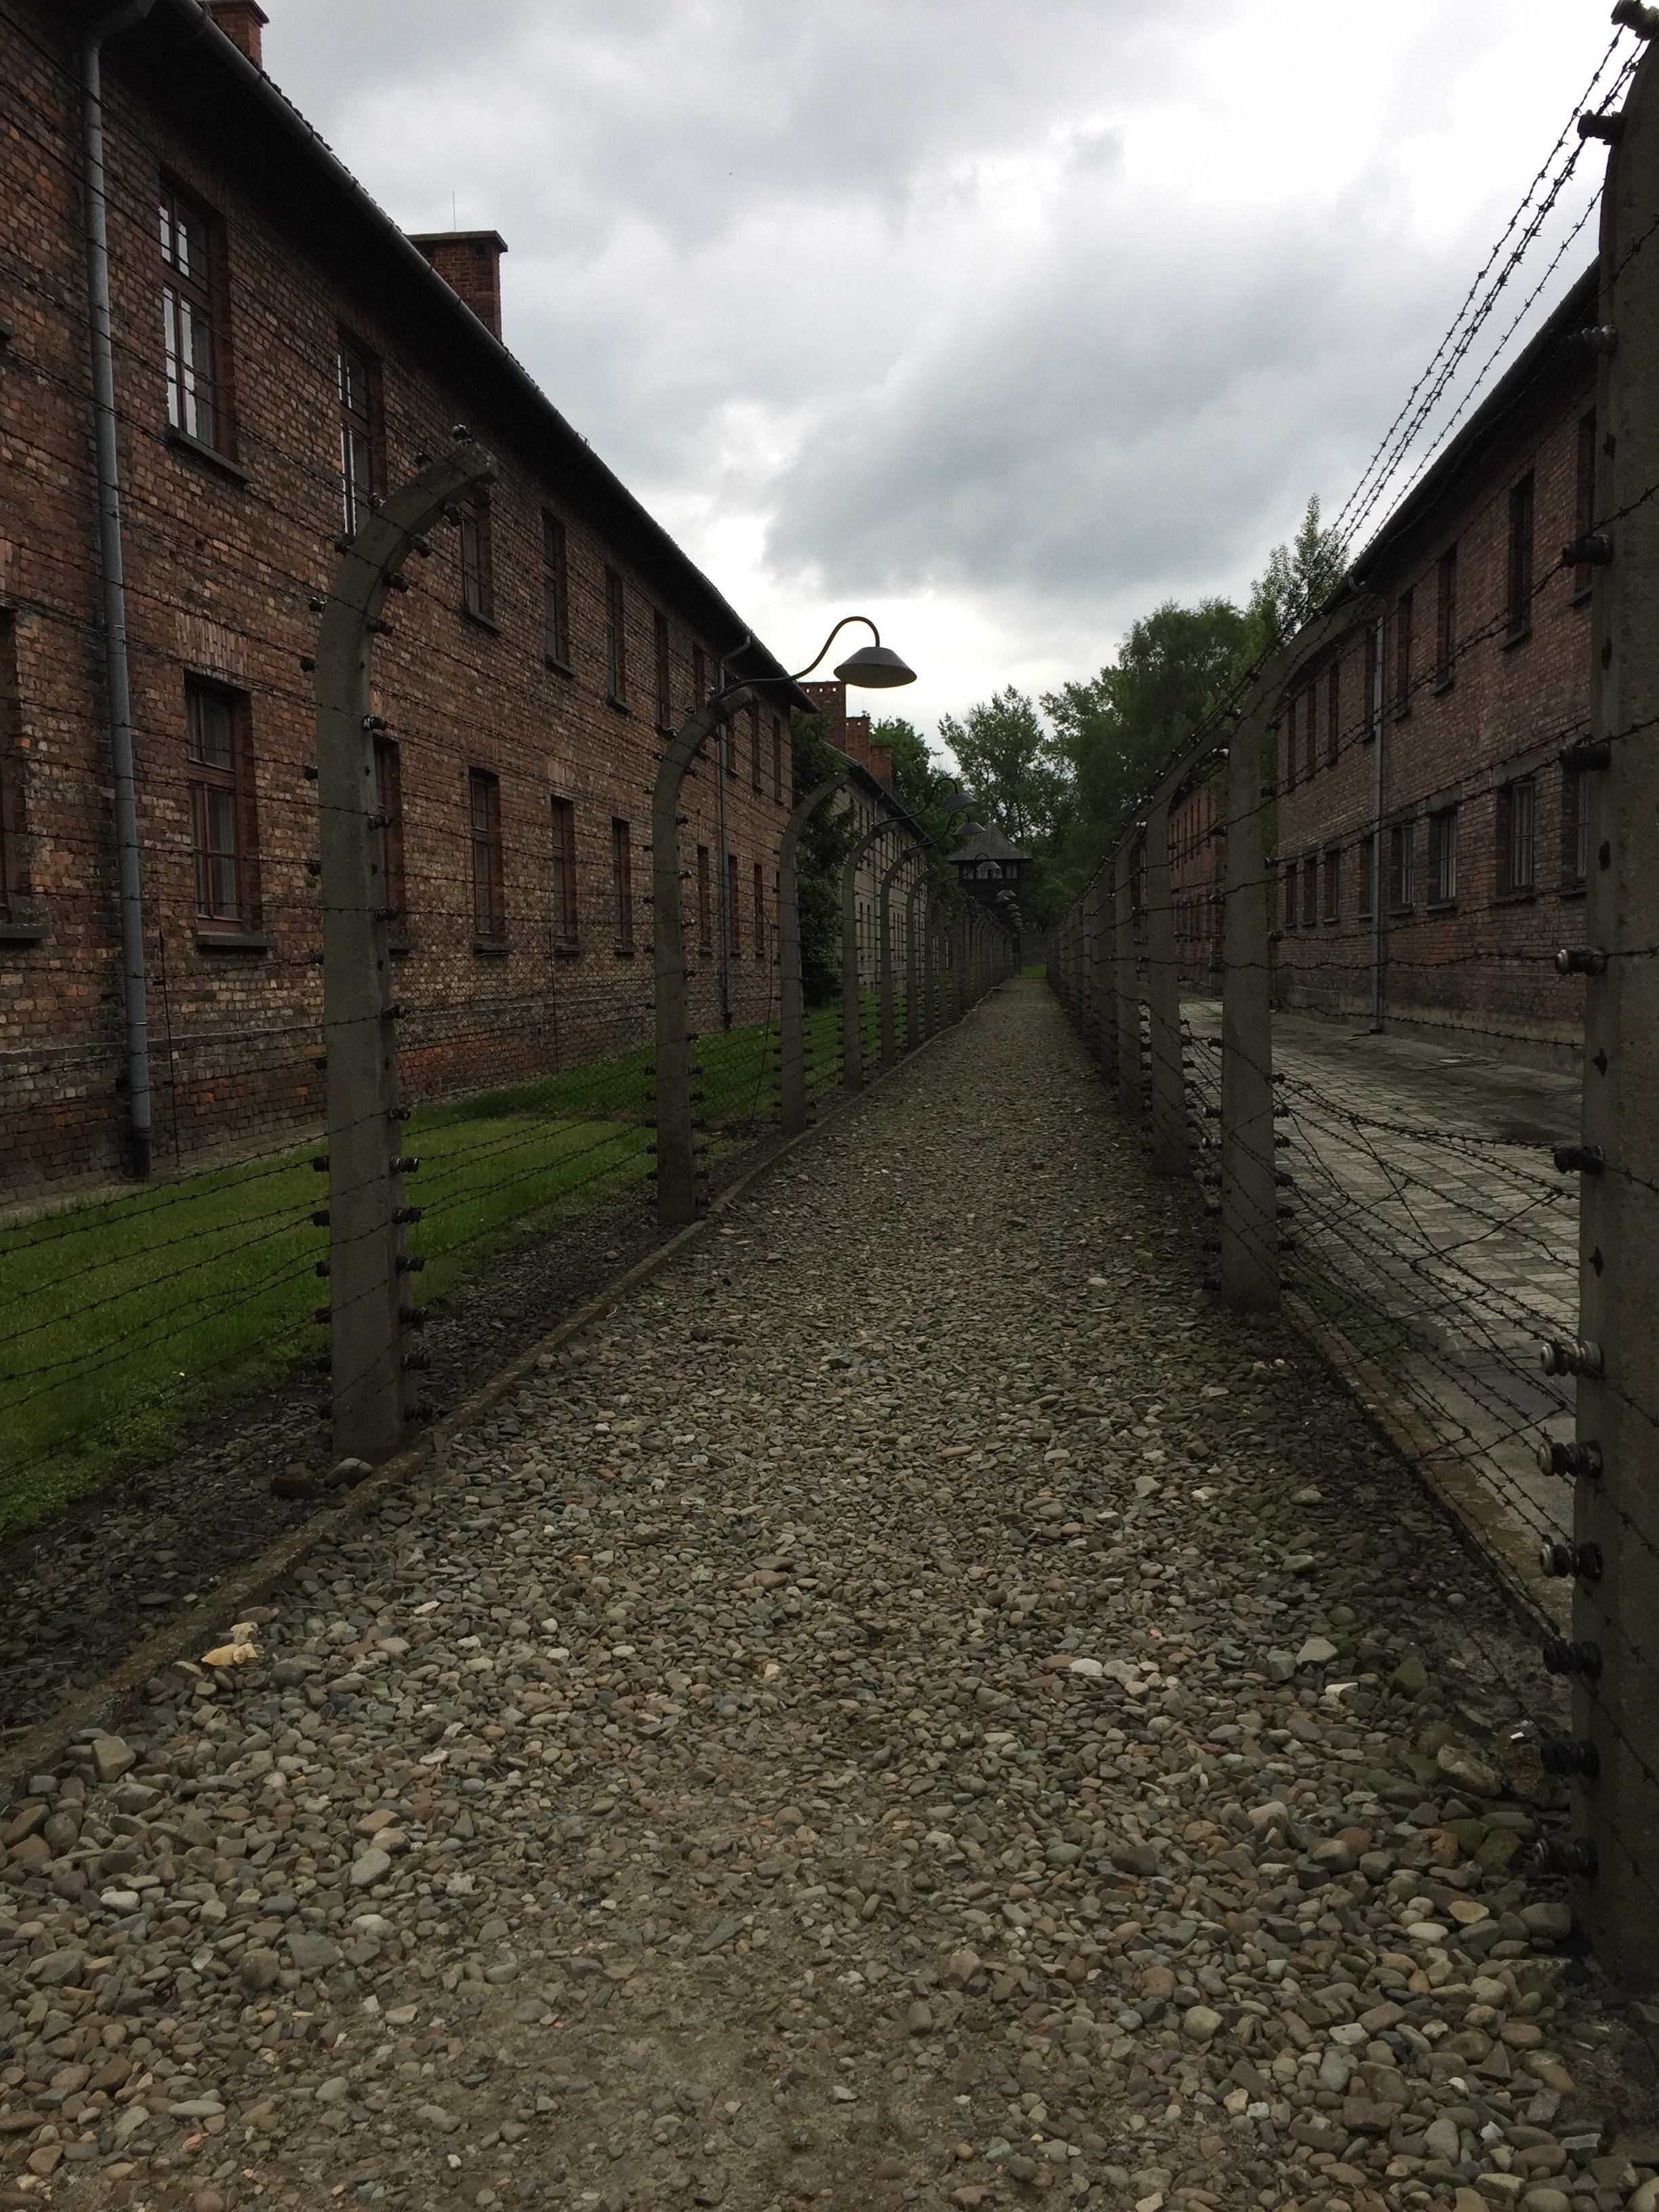 A Visit to Auschwitz - fences